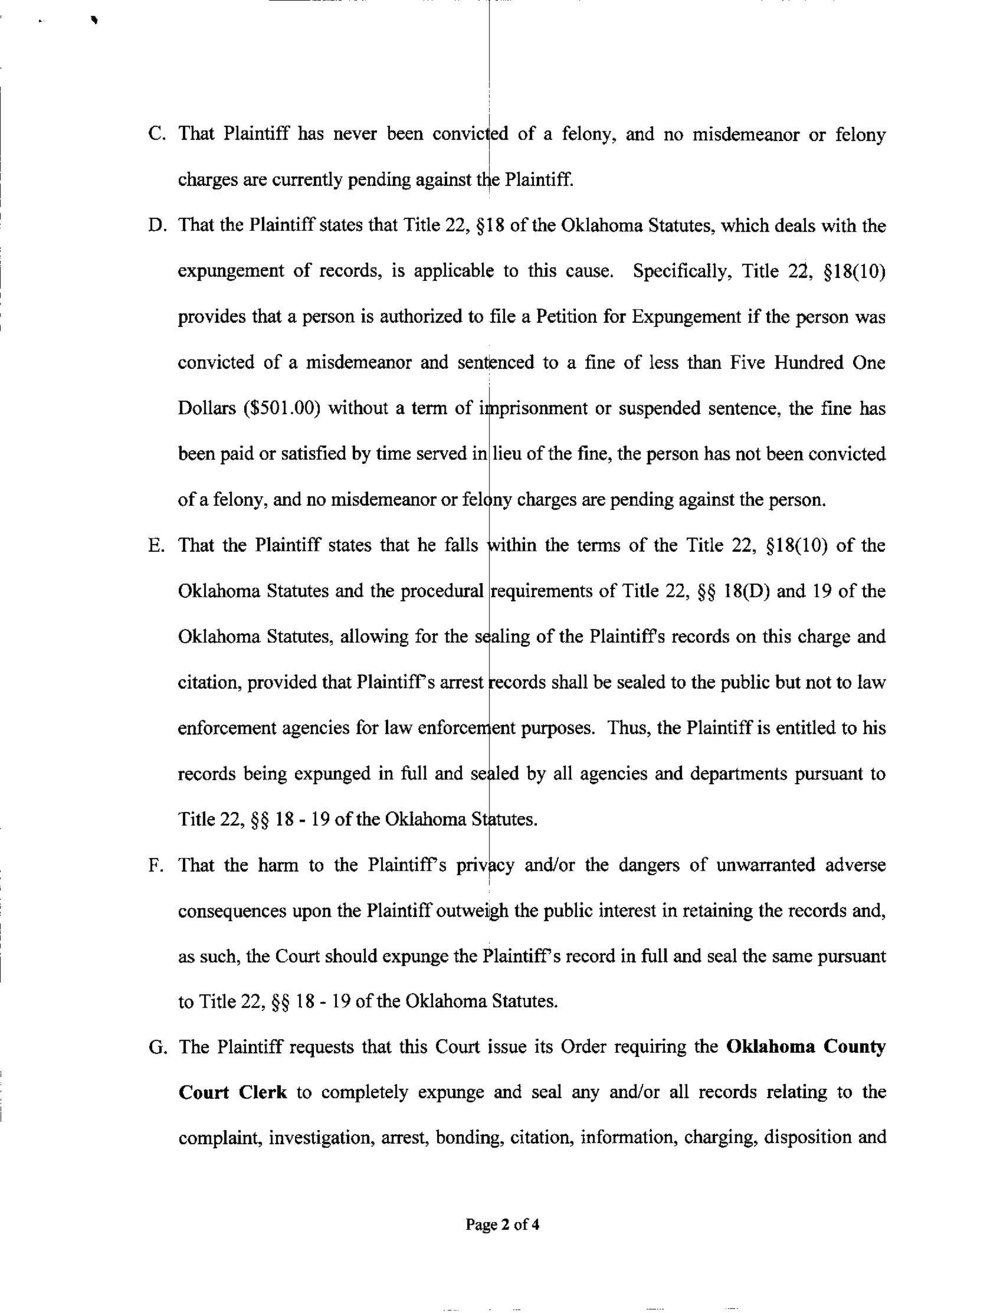 Hugh Spector Expungement Request_Page_2.jpg